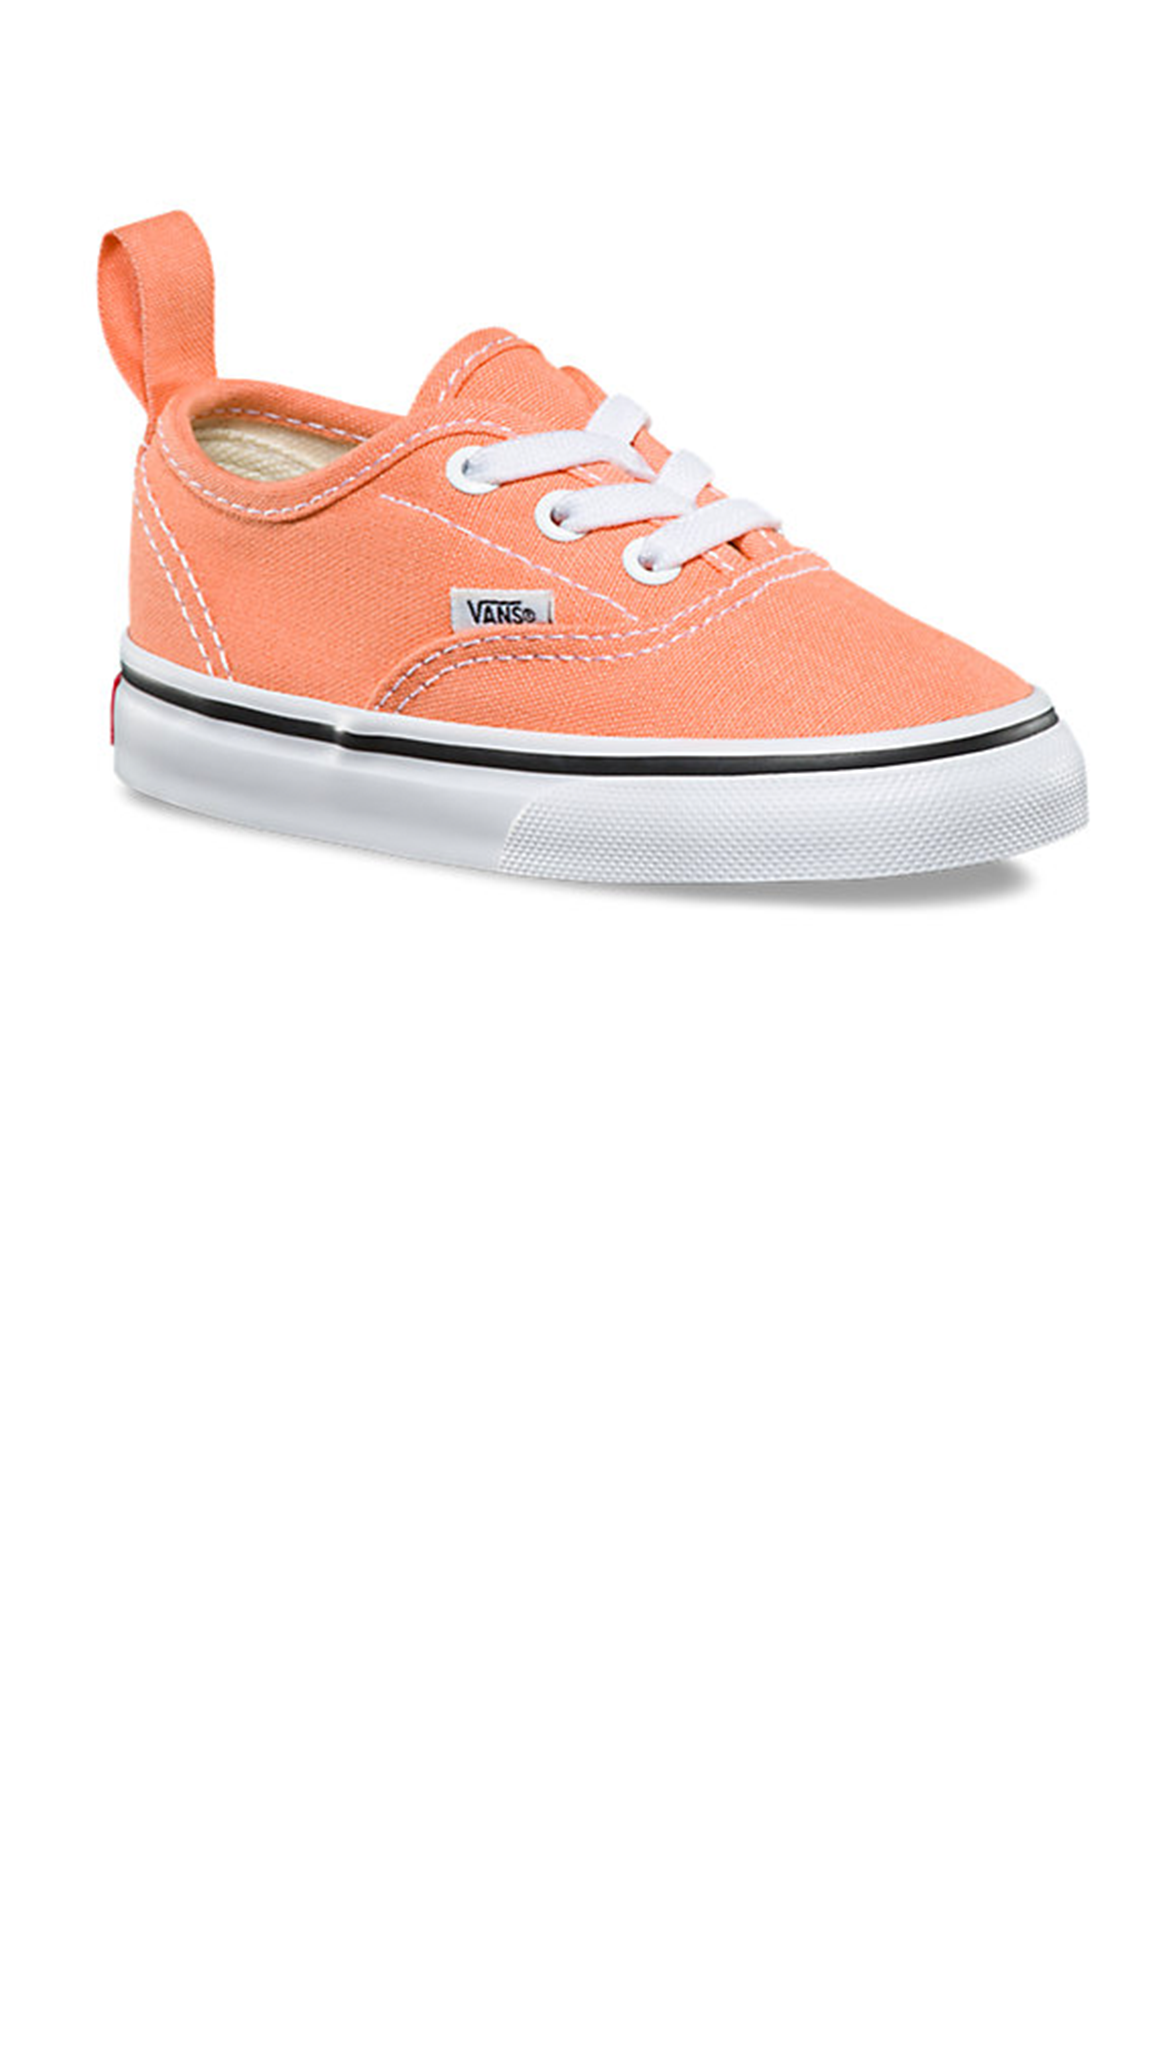 peach colored girls sneakers with white sole and laces